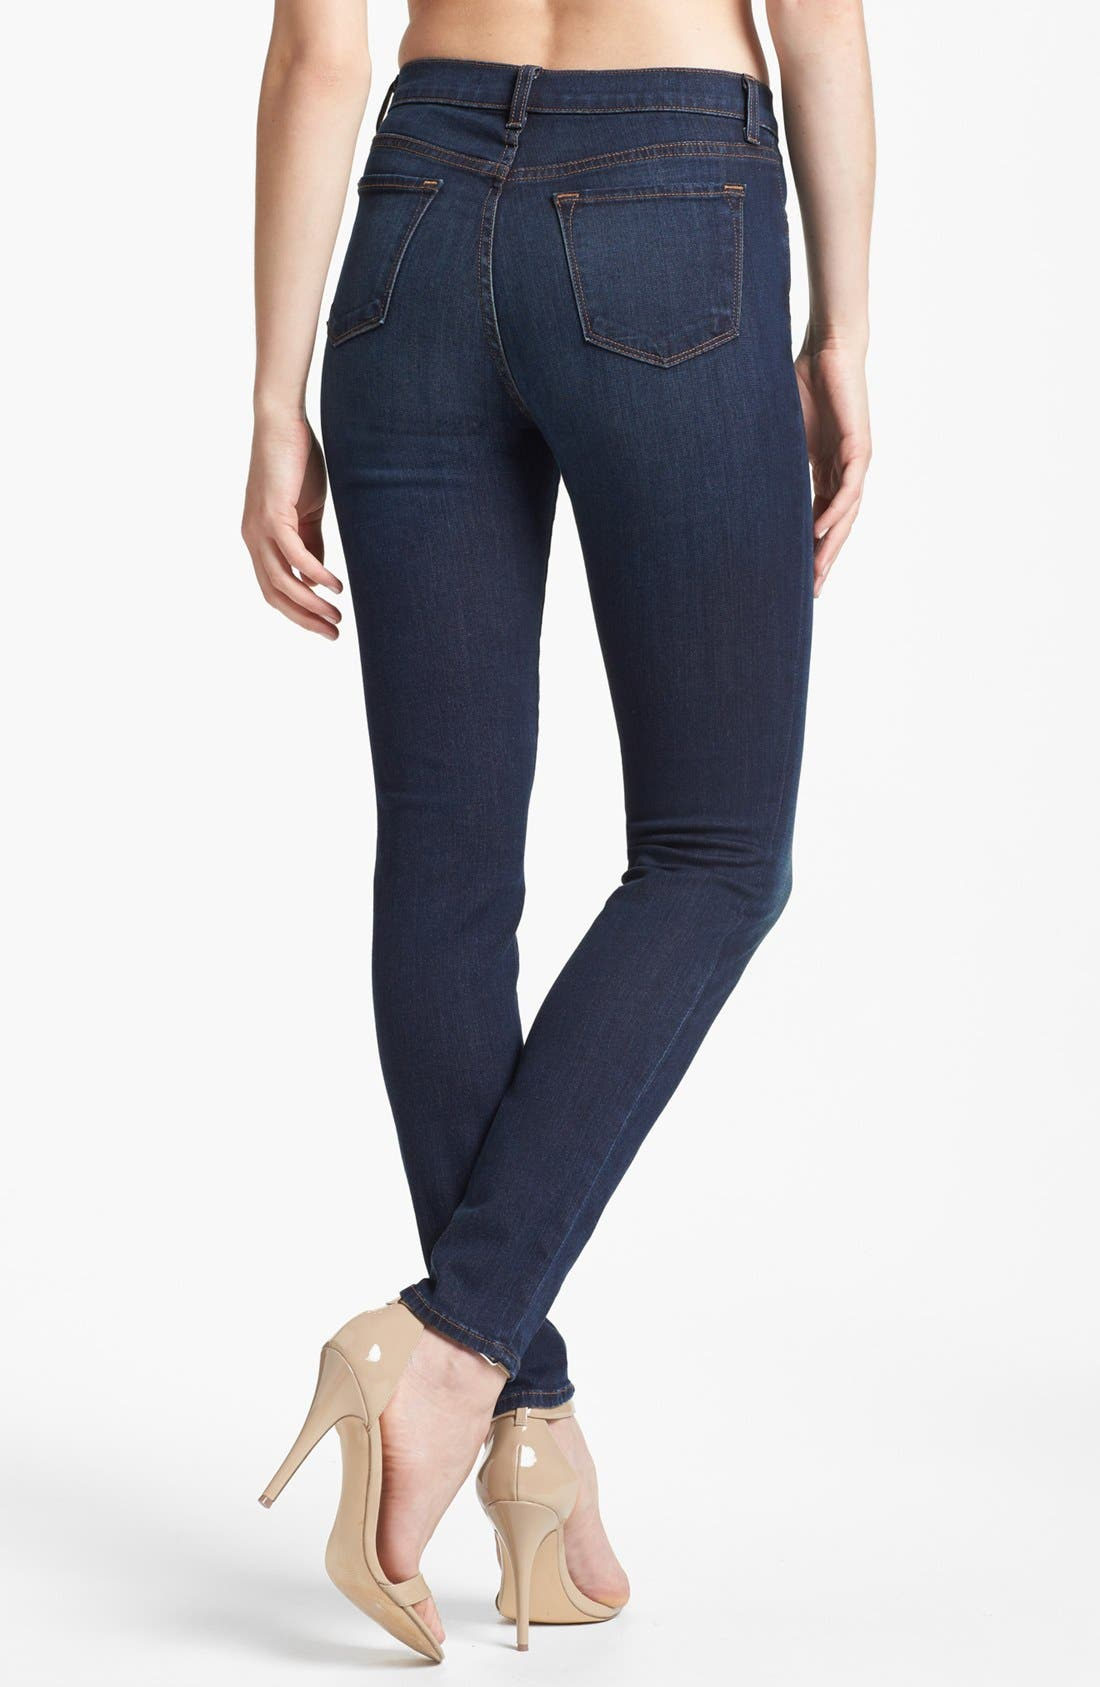 '2311 Maria' High Rise Jeans,                             Alternate thumbnail 3, color,                             410